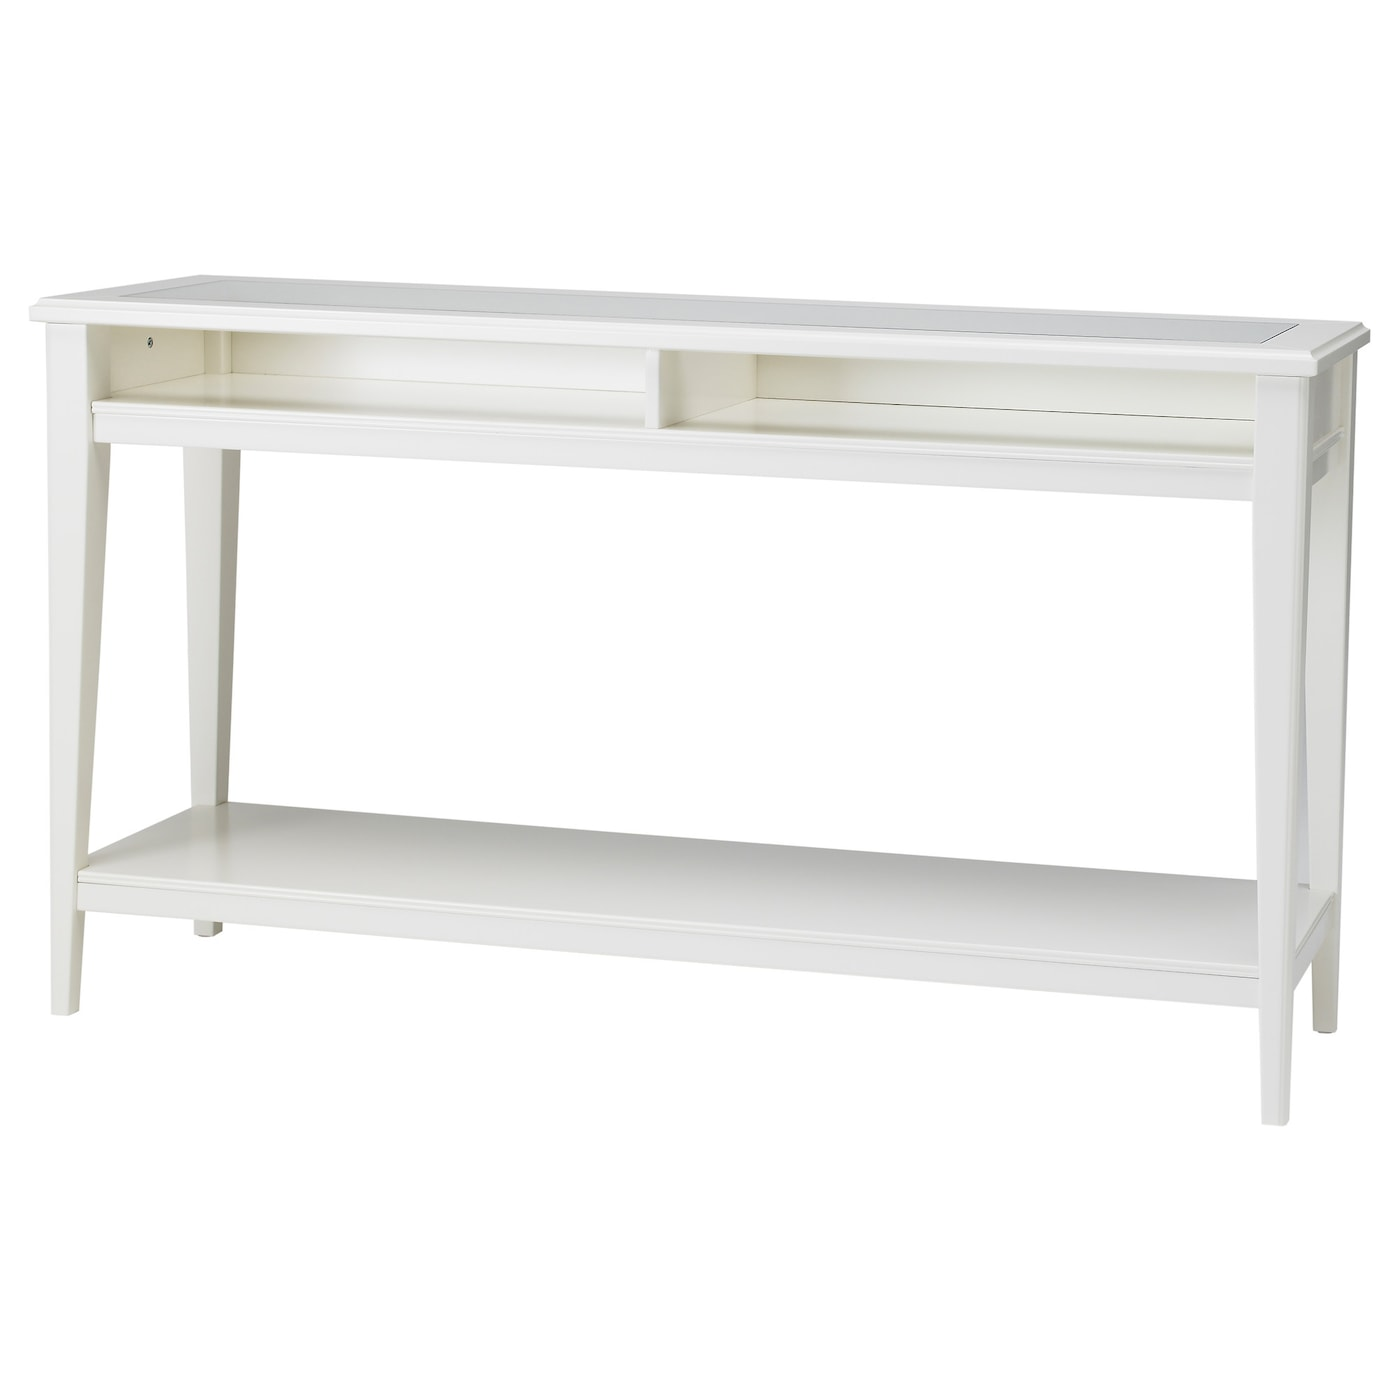 IKEA LIATORP console table Practical storage space underneath the table top.